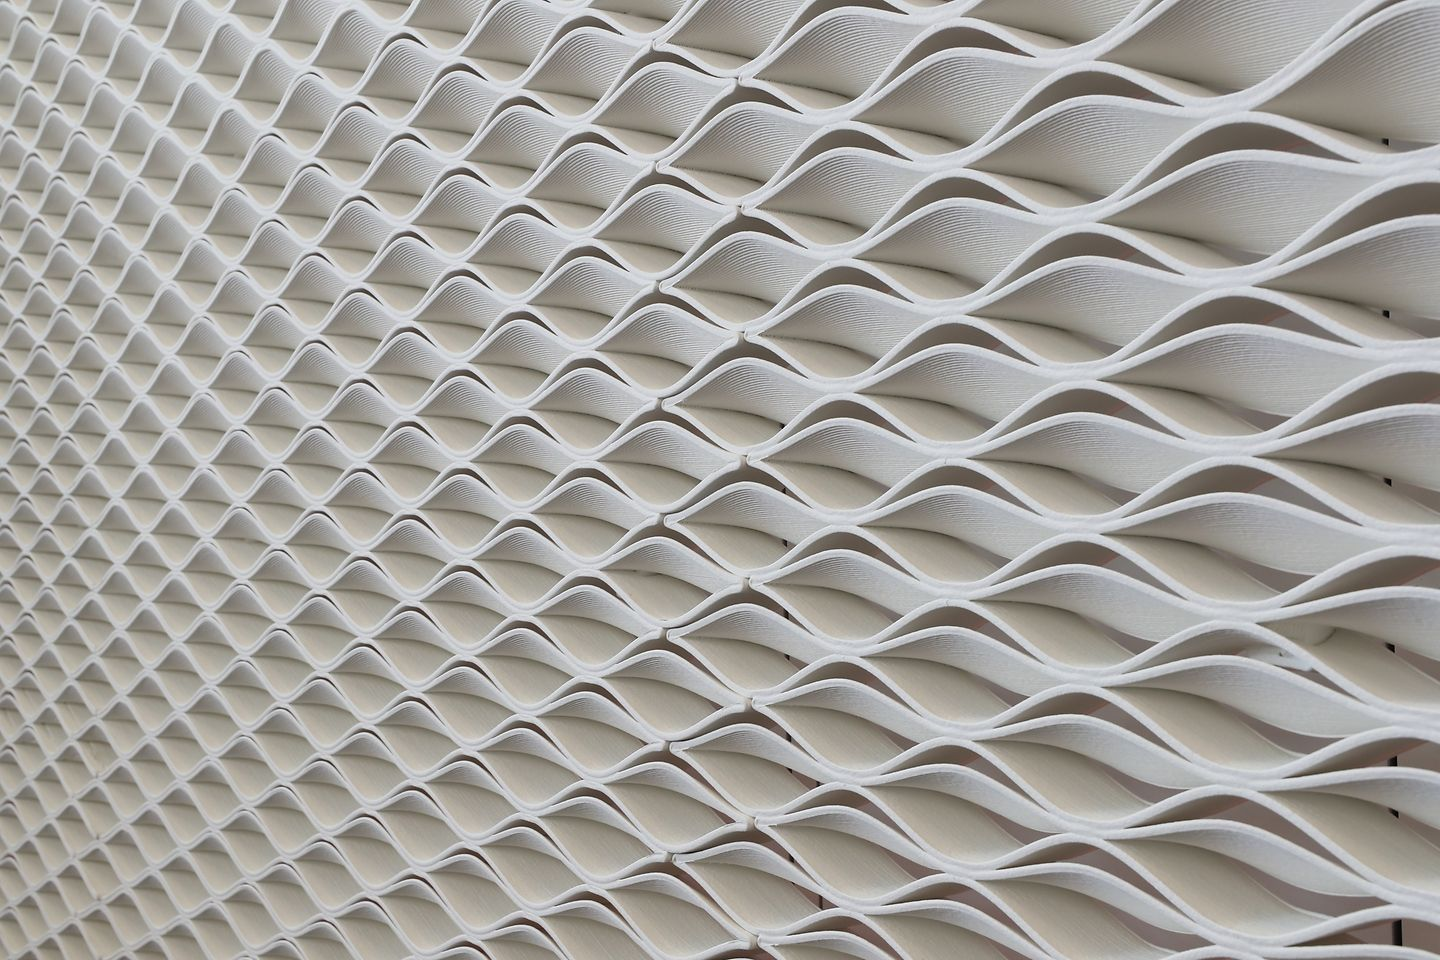 A 3D printed wall in the Henkel Innovation and Interaction Center in Dublin, Ireland, made from Loctite products.